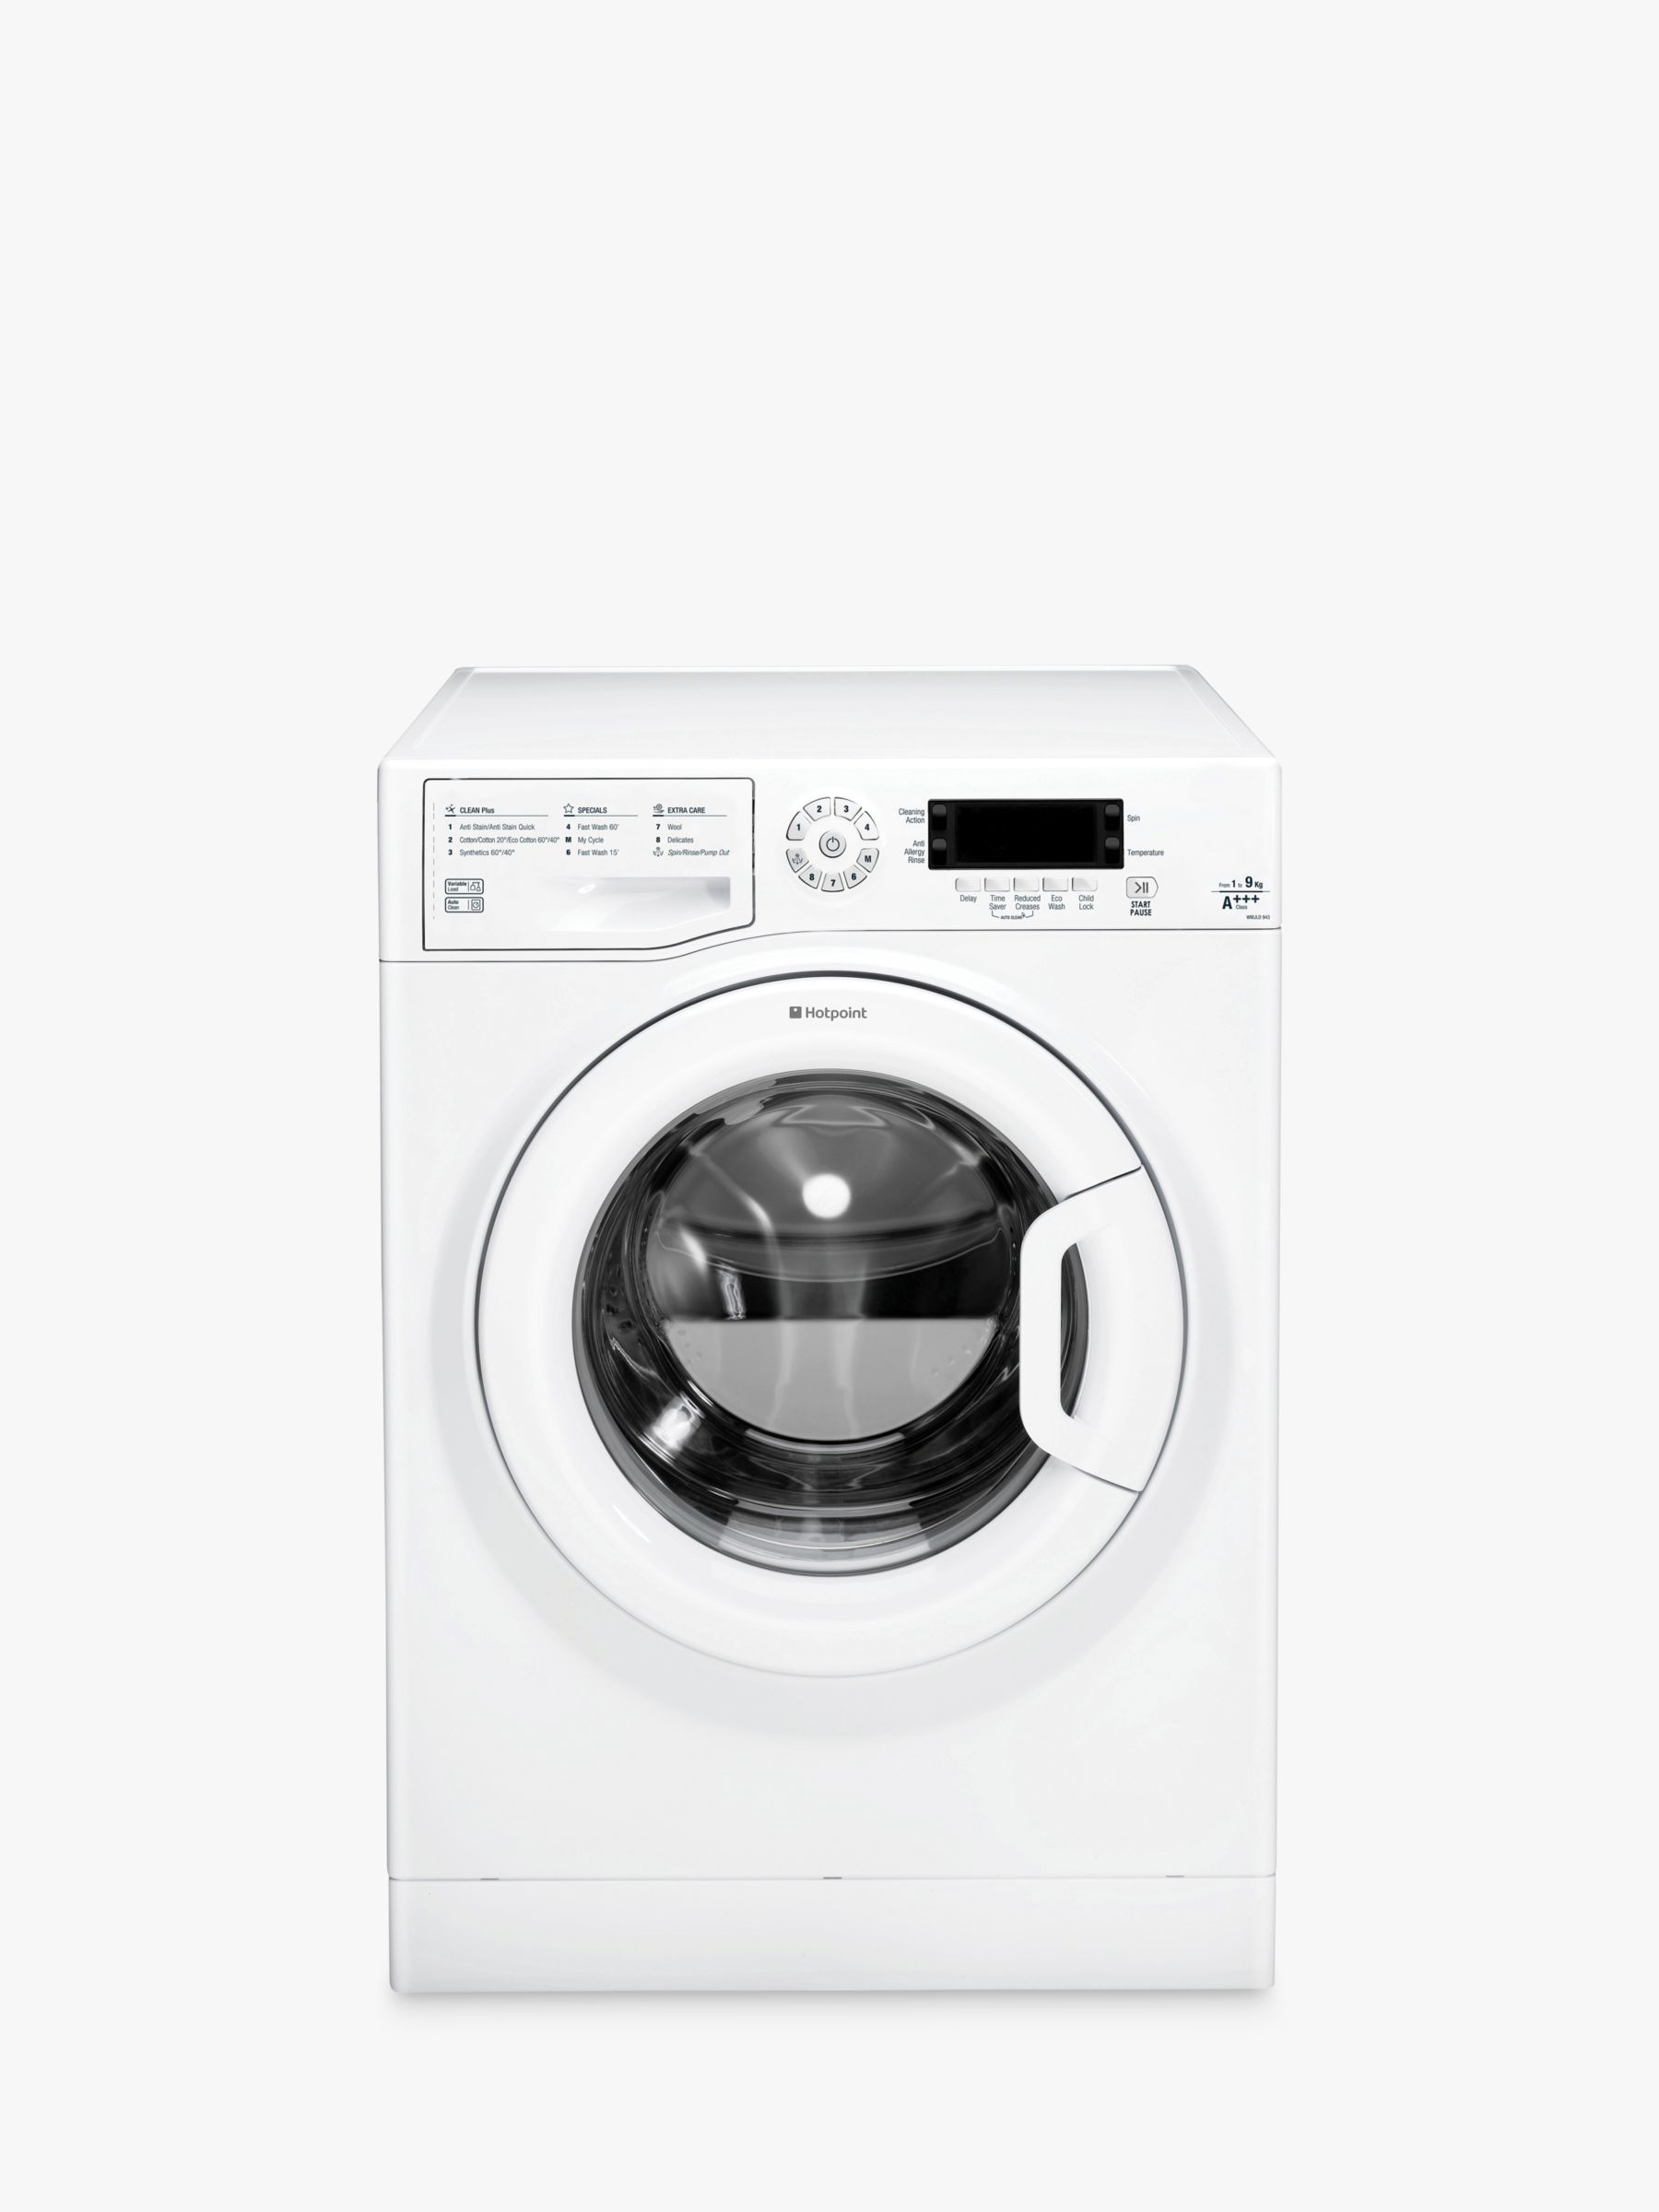 Hotpoint Hotpoint WMJLD943P Freestanding Washing Machine, 9kg Load, A+++ Energy Rating, 1400rpm Spin, White